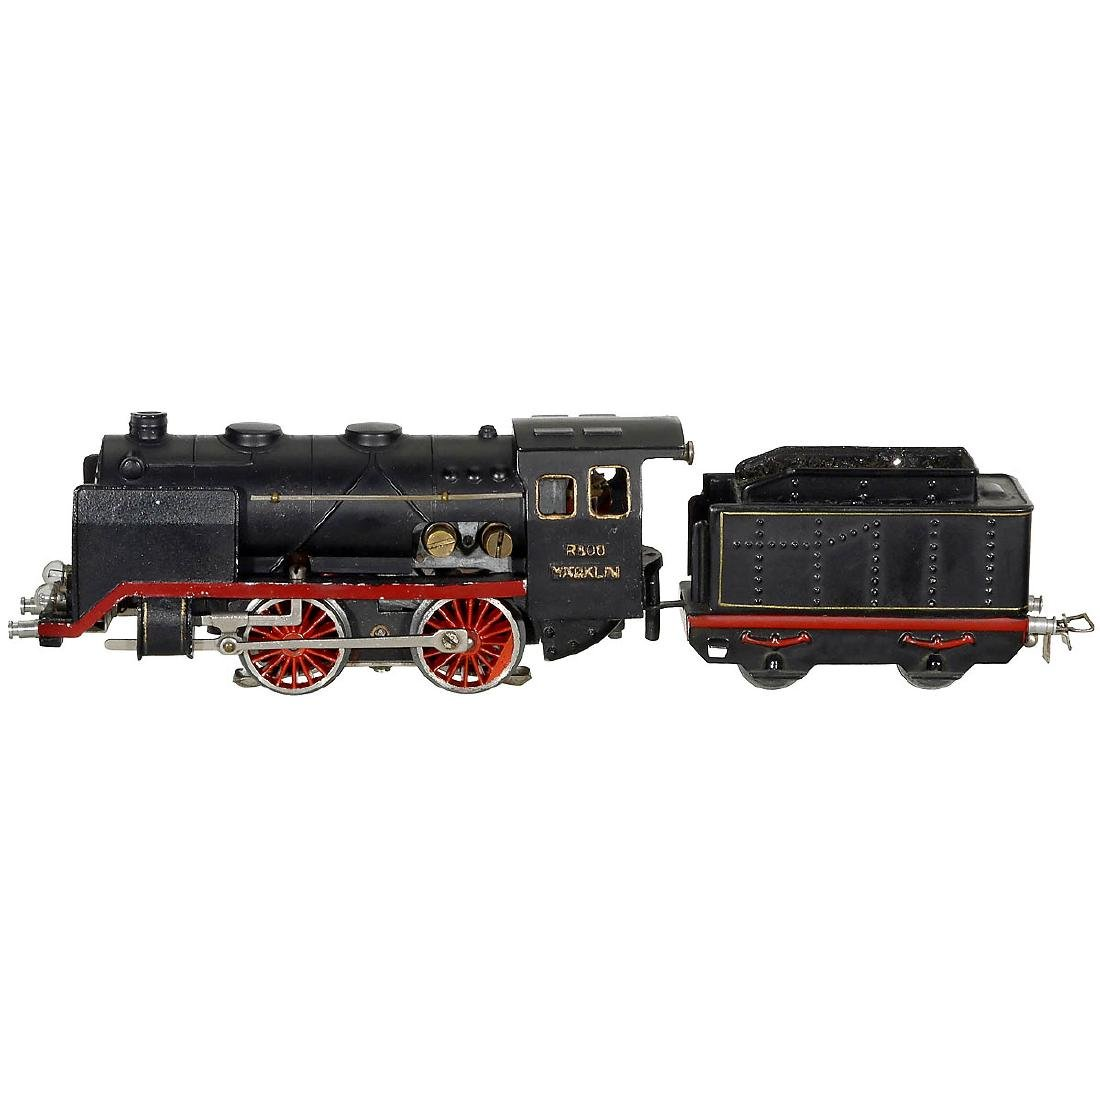 Märklin R 800 Steam Locomotive, c. 1940 - 2